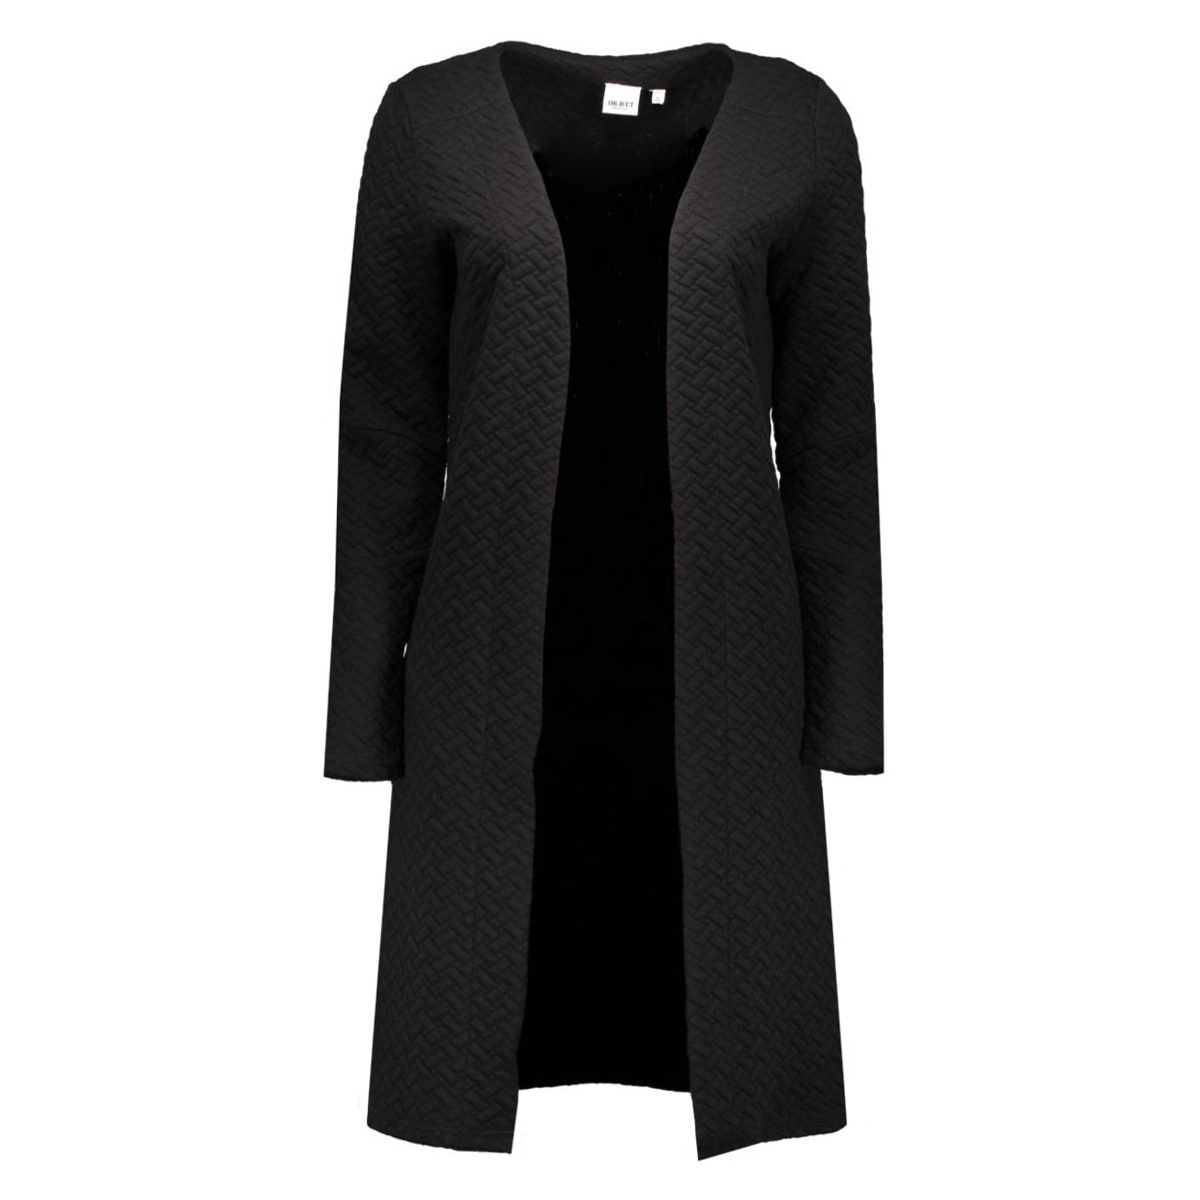 objcamden long sweat blazer noos 23022850 object blazer black